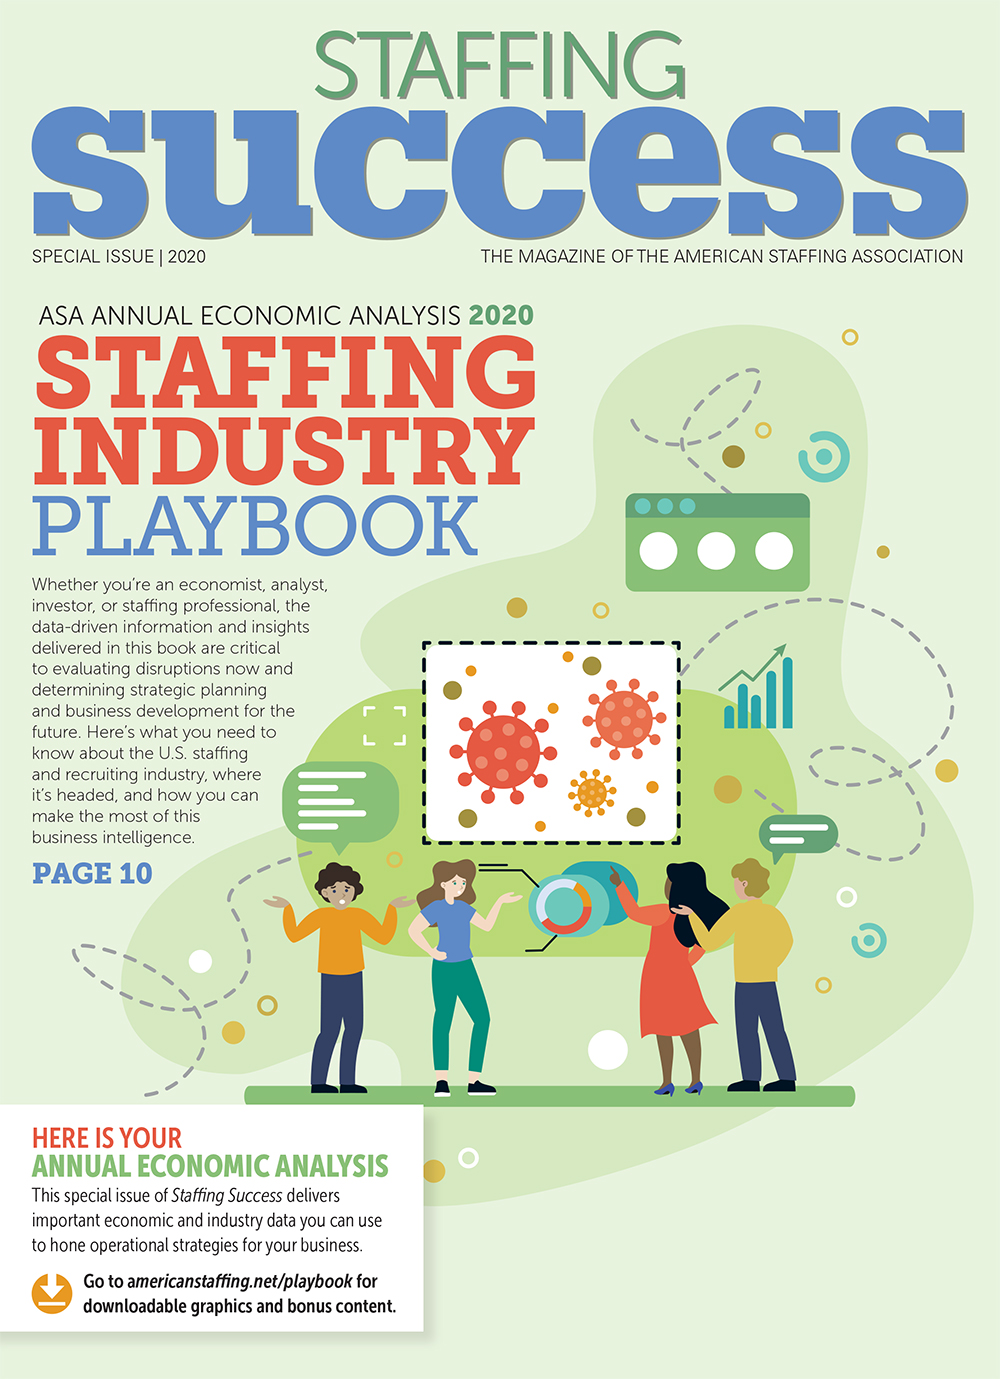 ASA Staffing Industry Playbook 2020